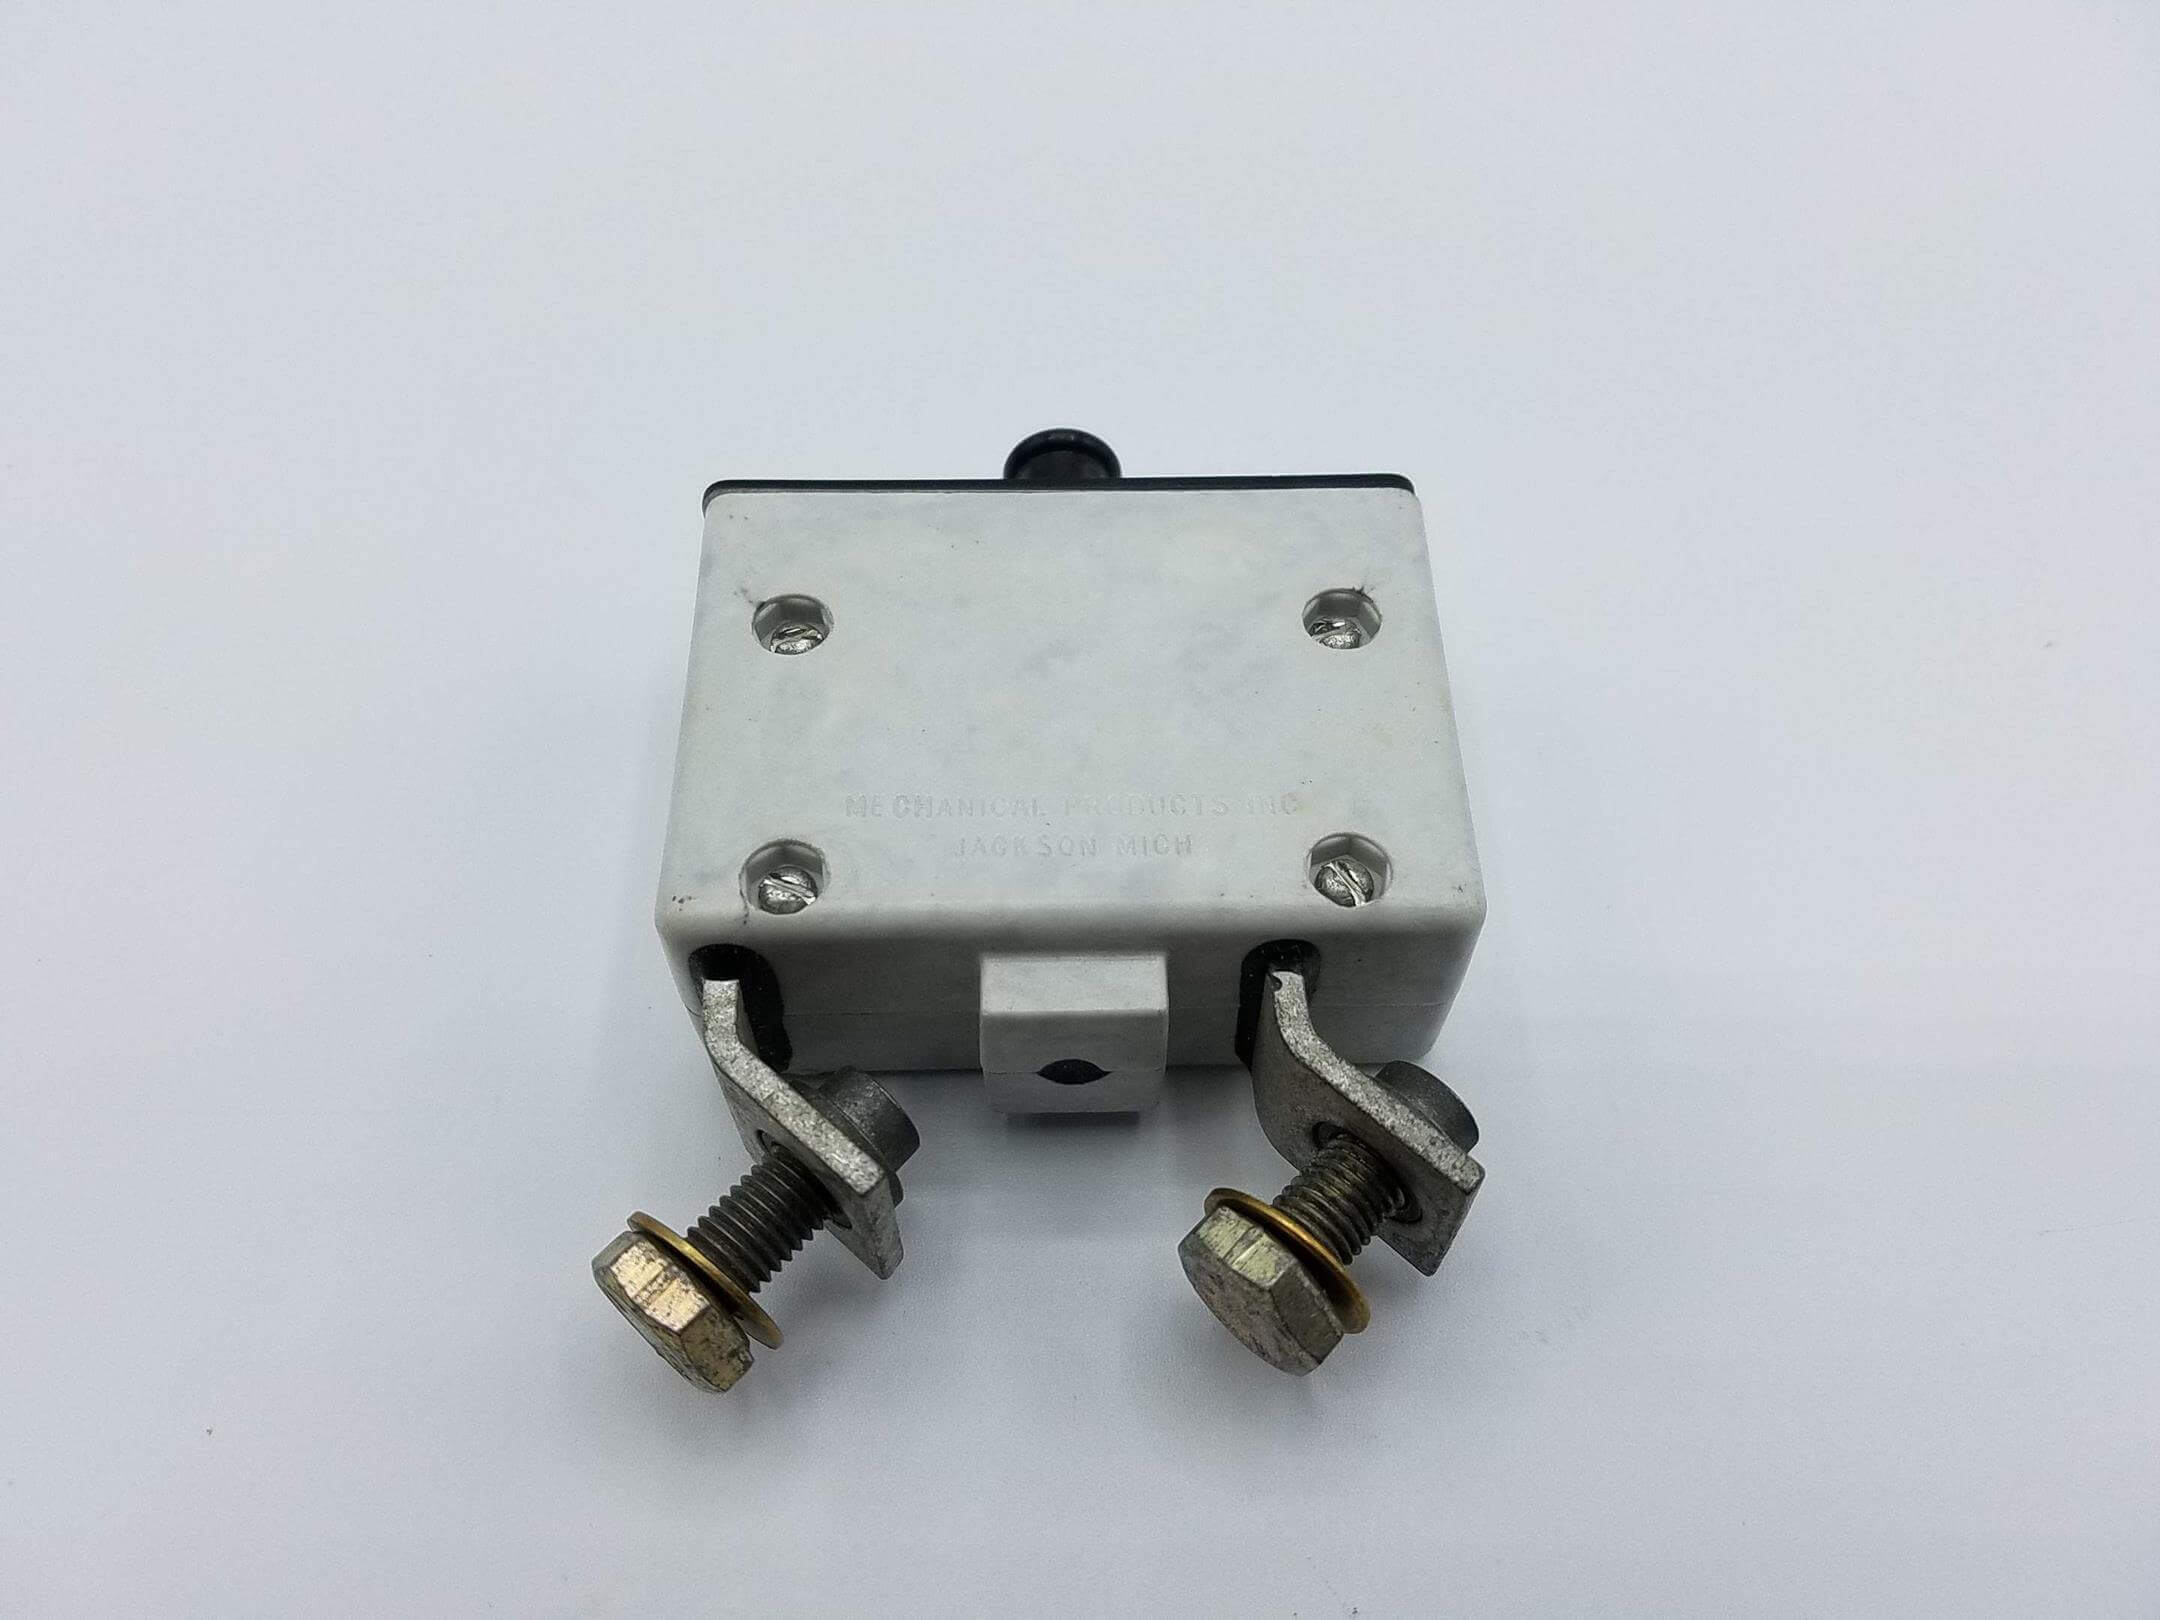 Picture of part number 170-002-140